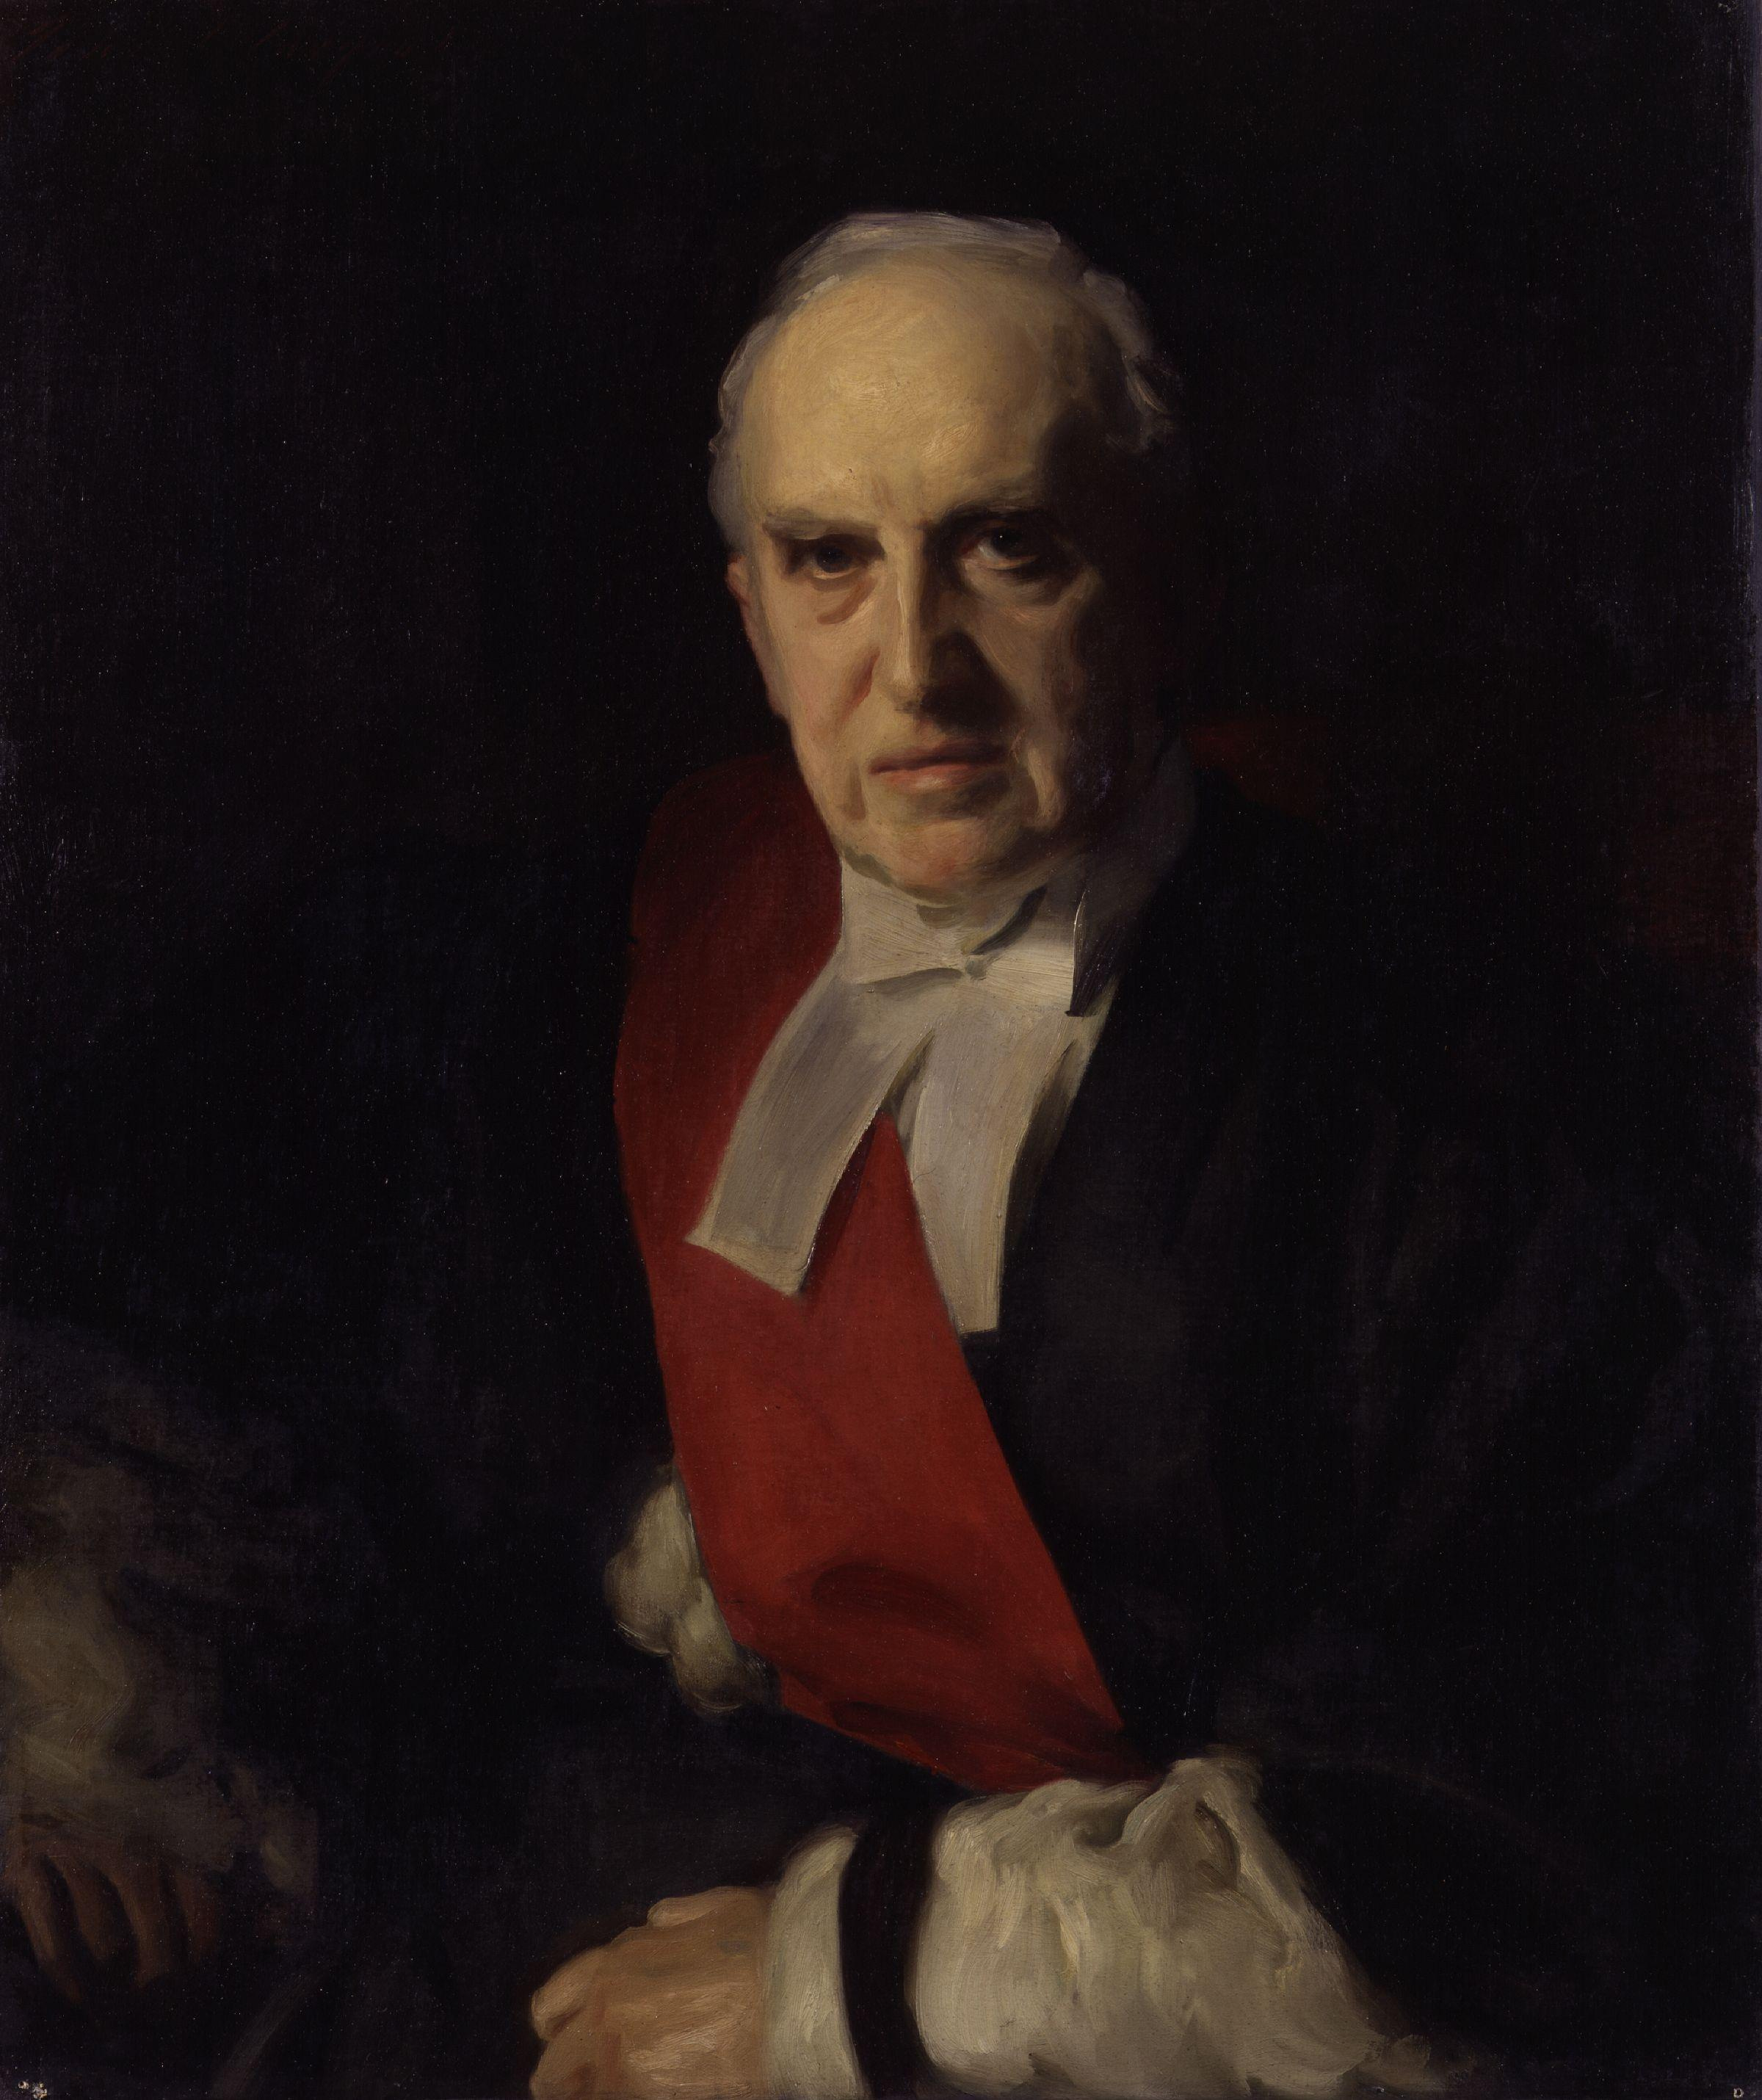 Charles_Arthur_Russell,_Baron_Russell_of_Killowen_by_John_Singer_Sargent